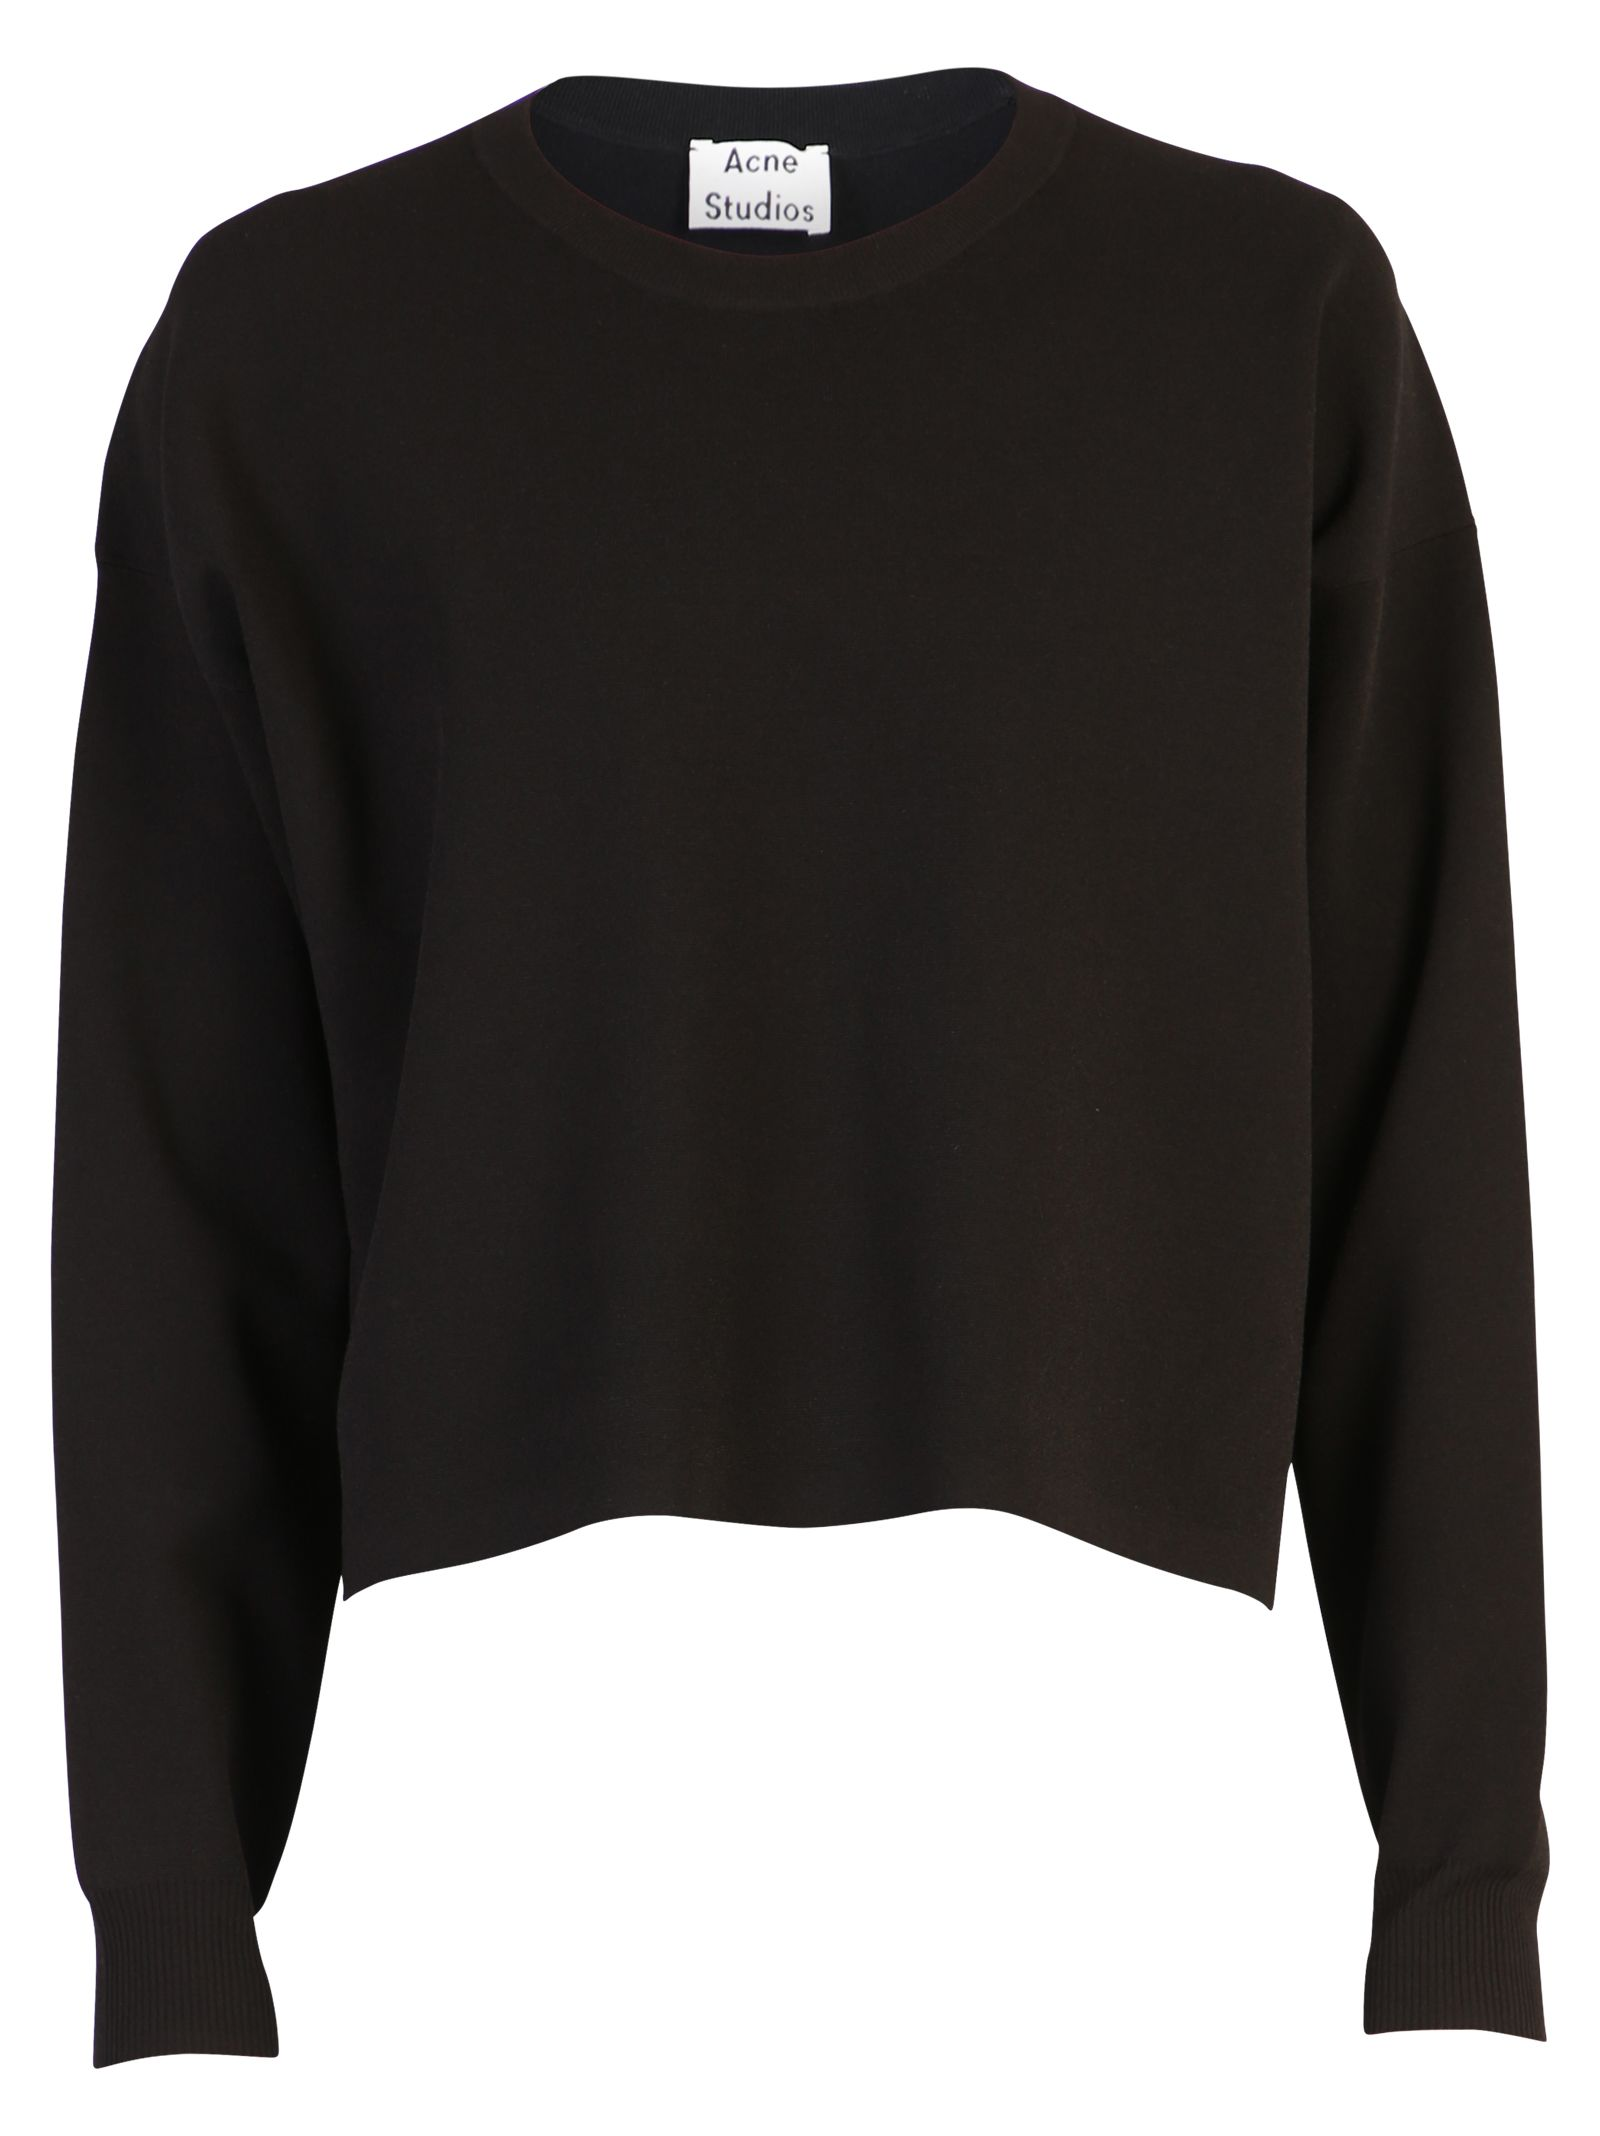 Acne Studios Black Cropped Sweater